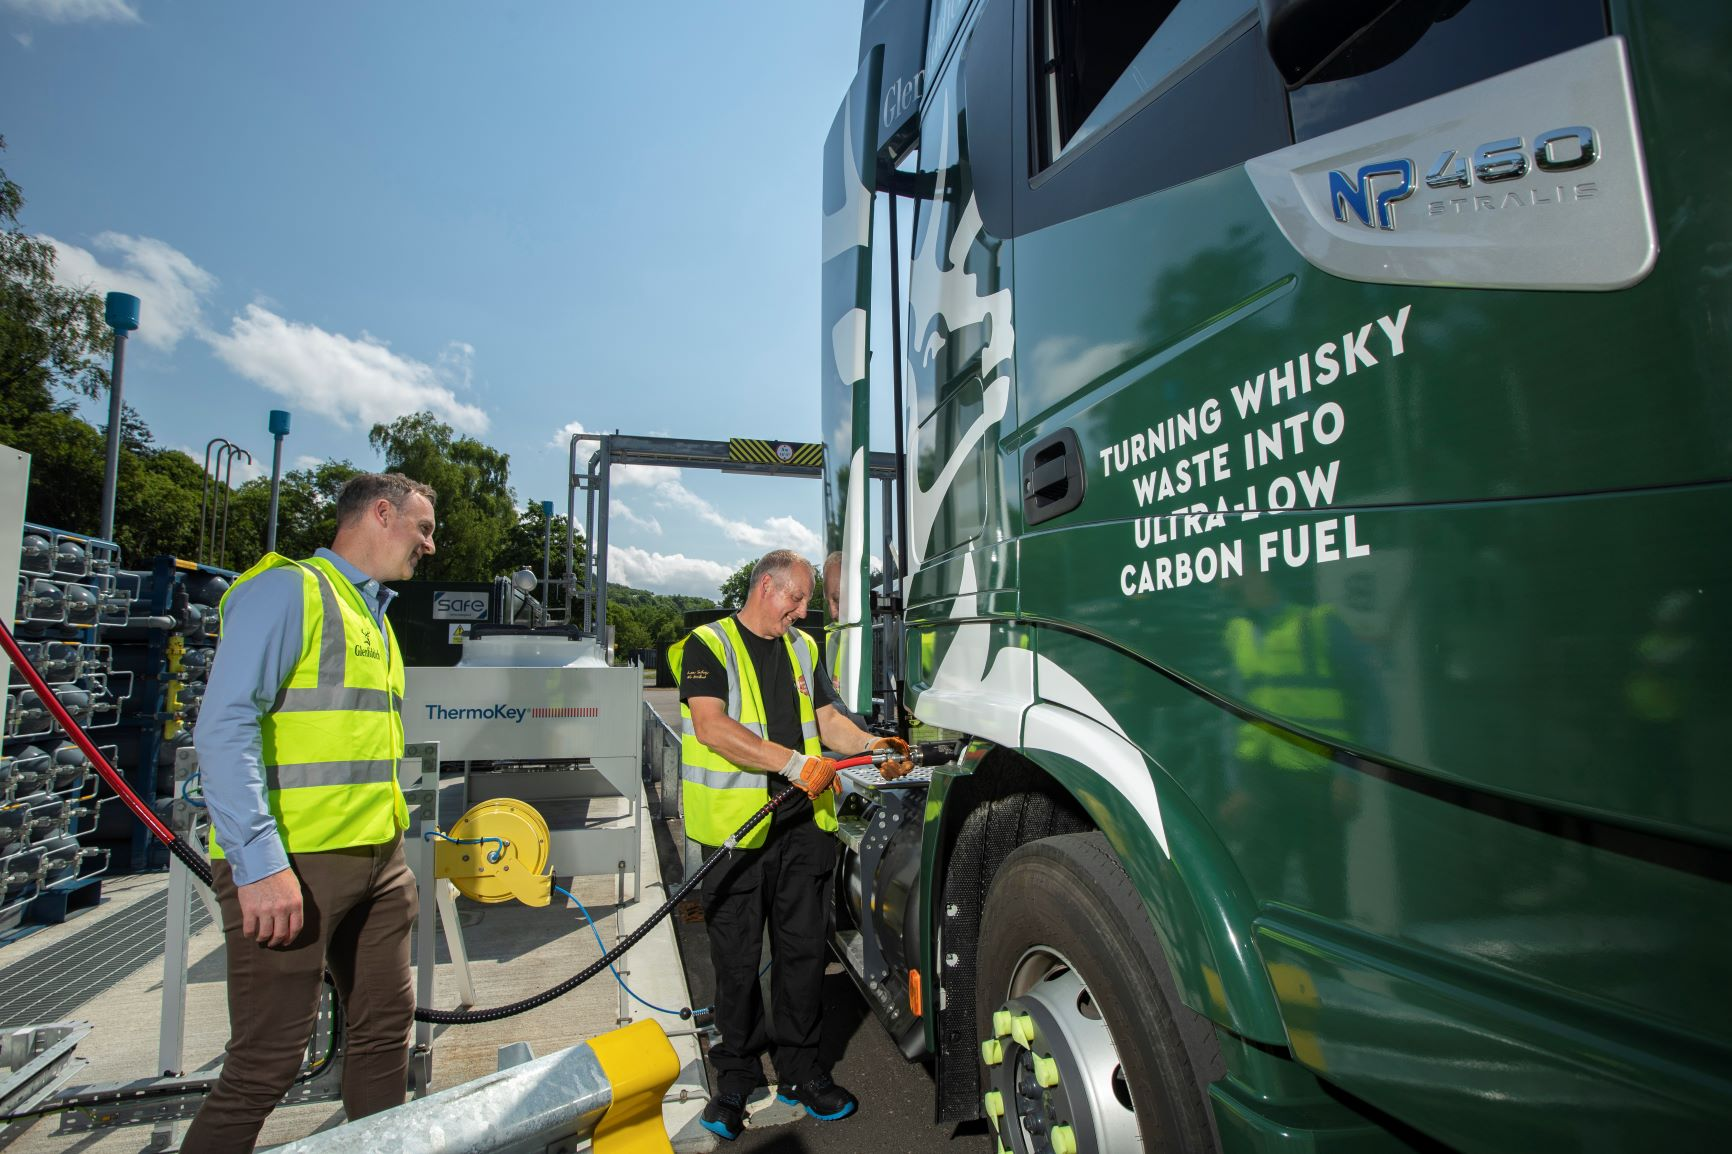 Glenfiddich fuels transport fleet with biogas made from its whisky residue